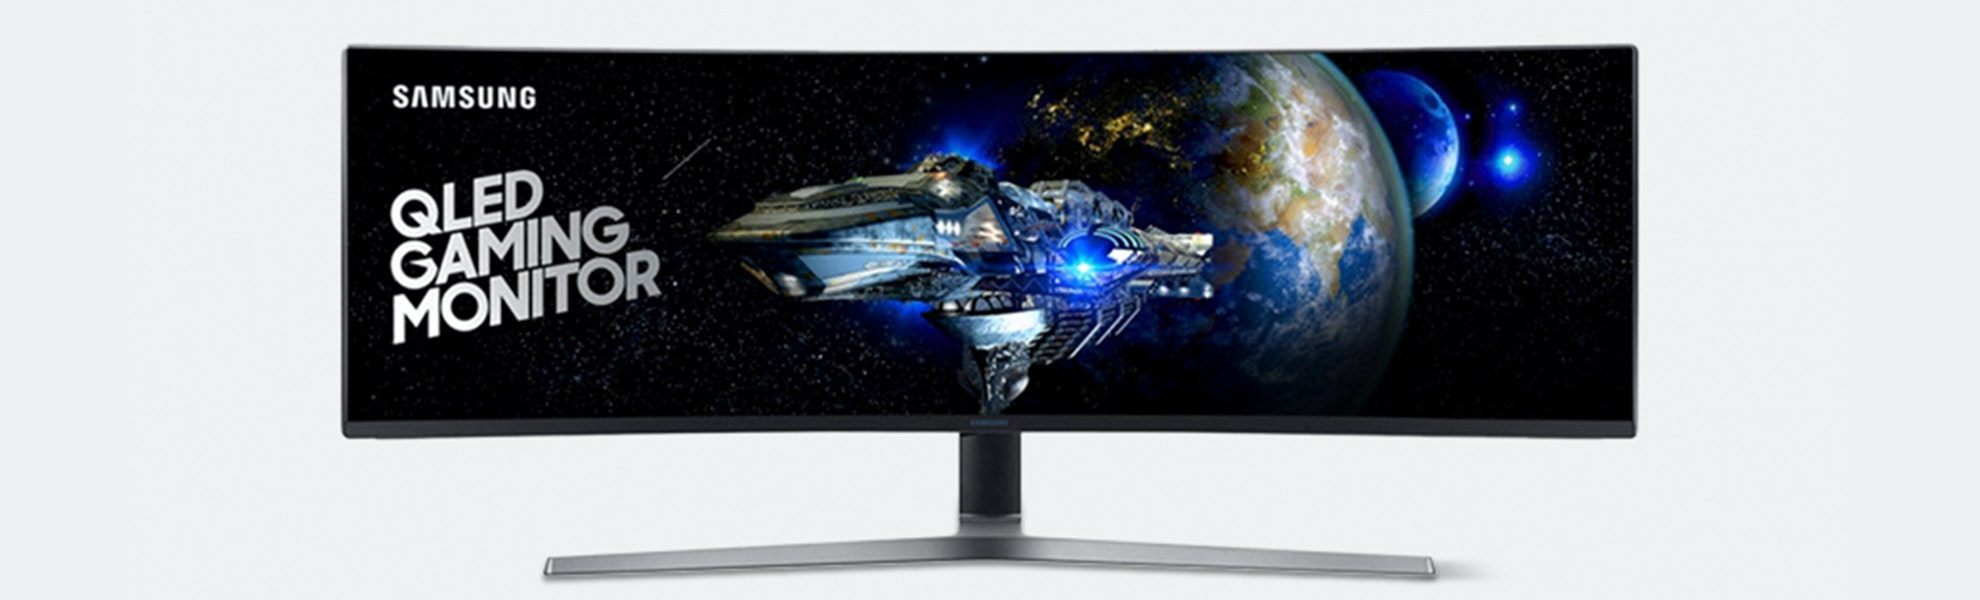 Samsung 49 Inch Qled Hdr 144hz Gaming Monitor Price Reviews